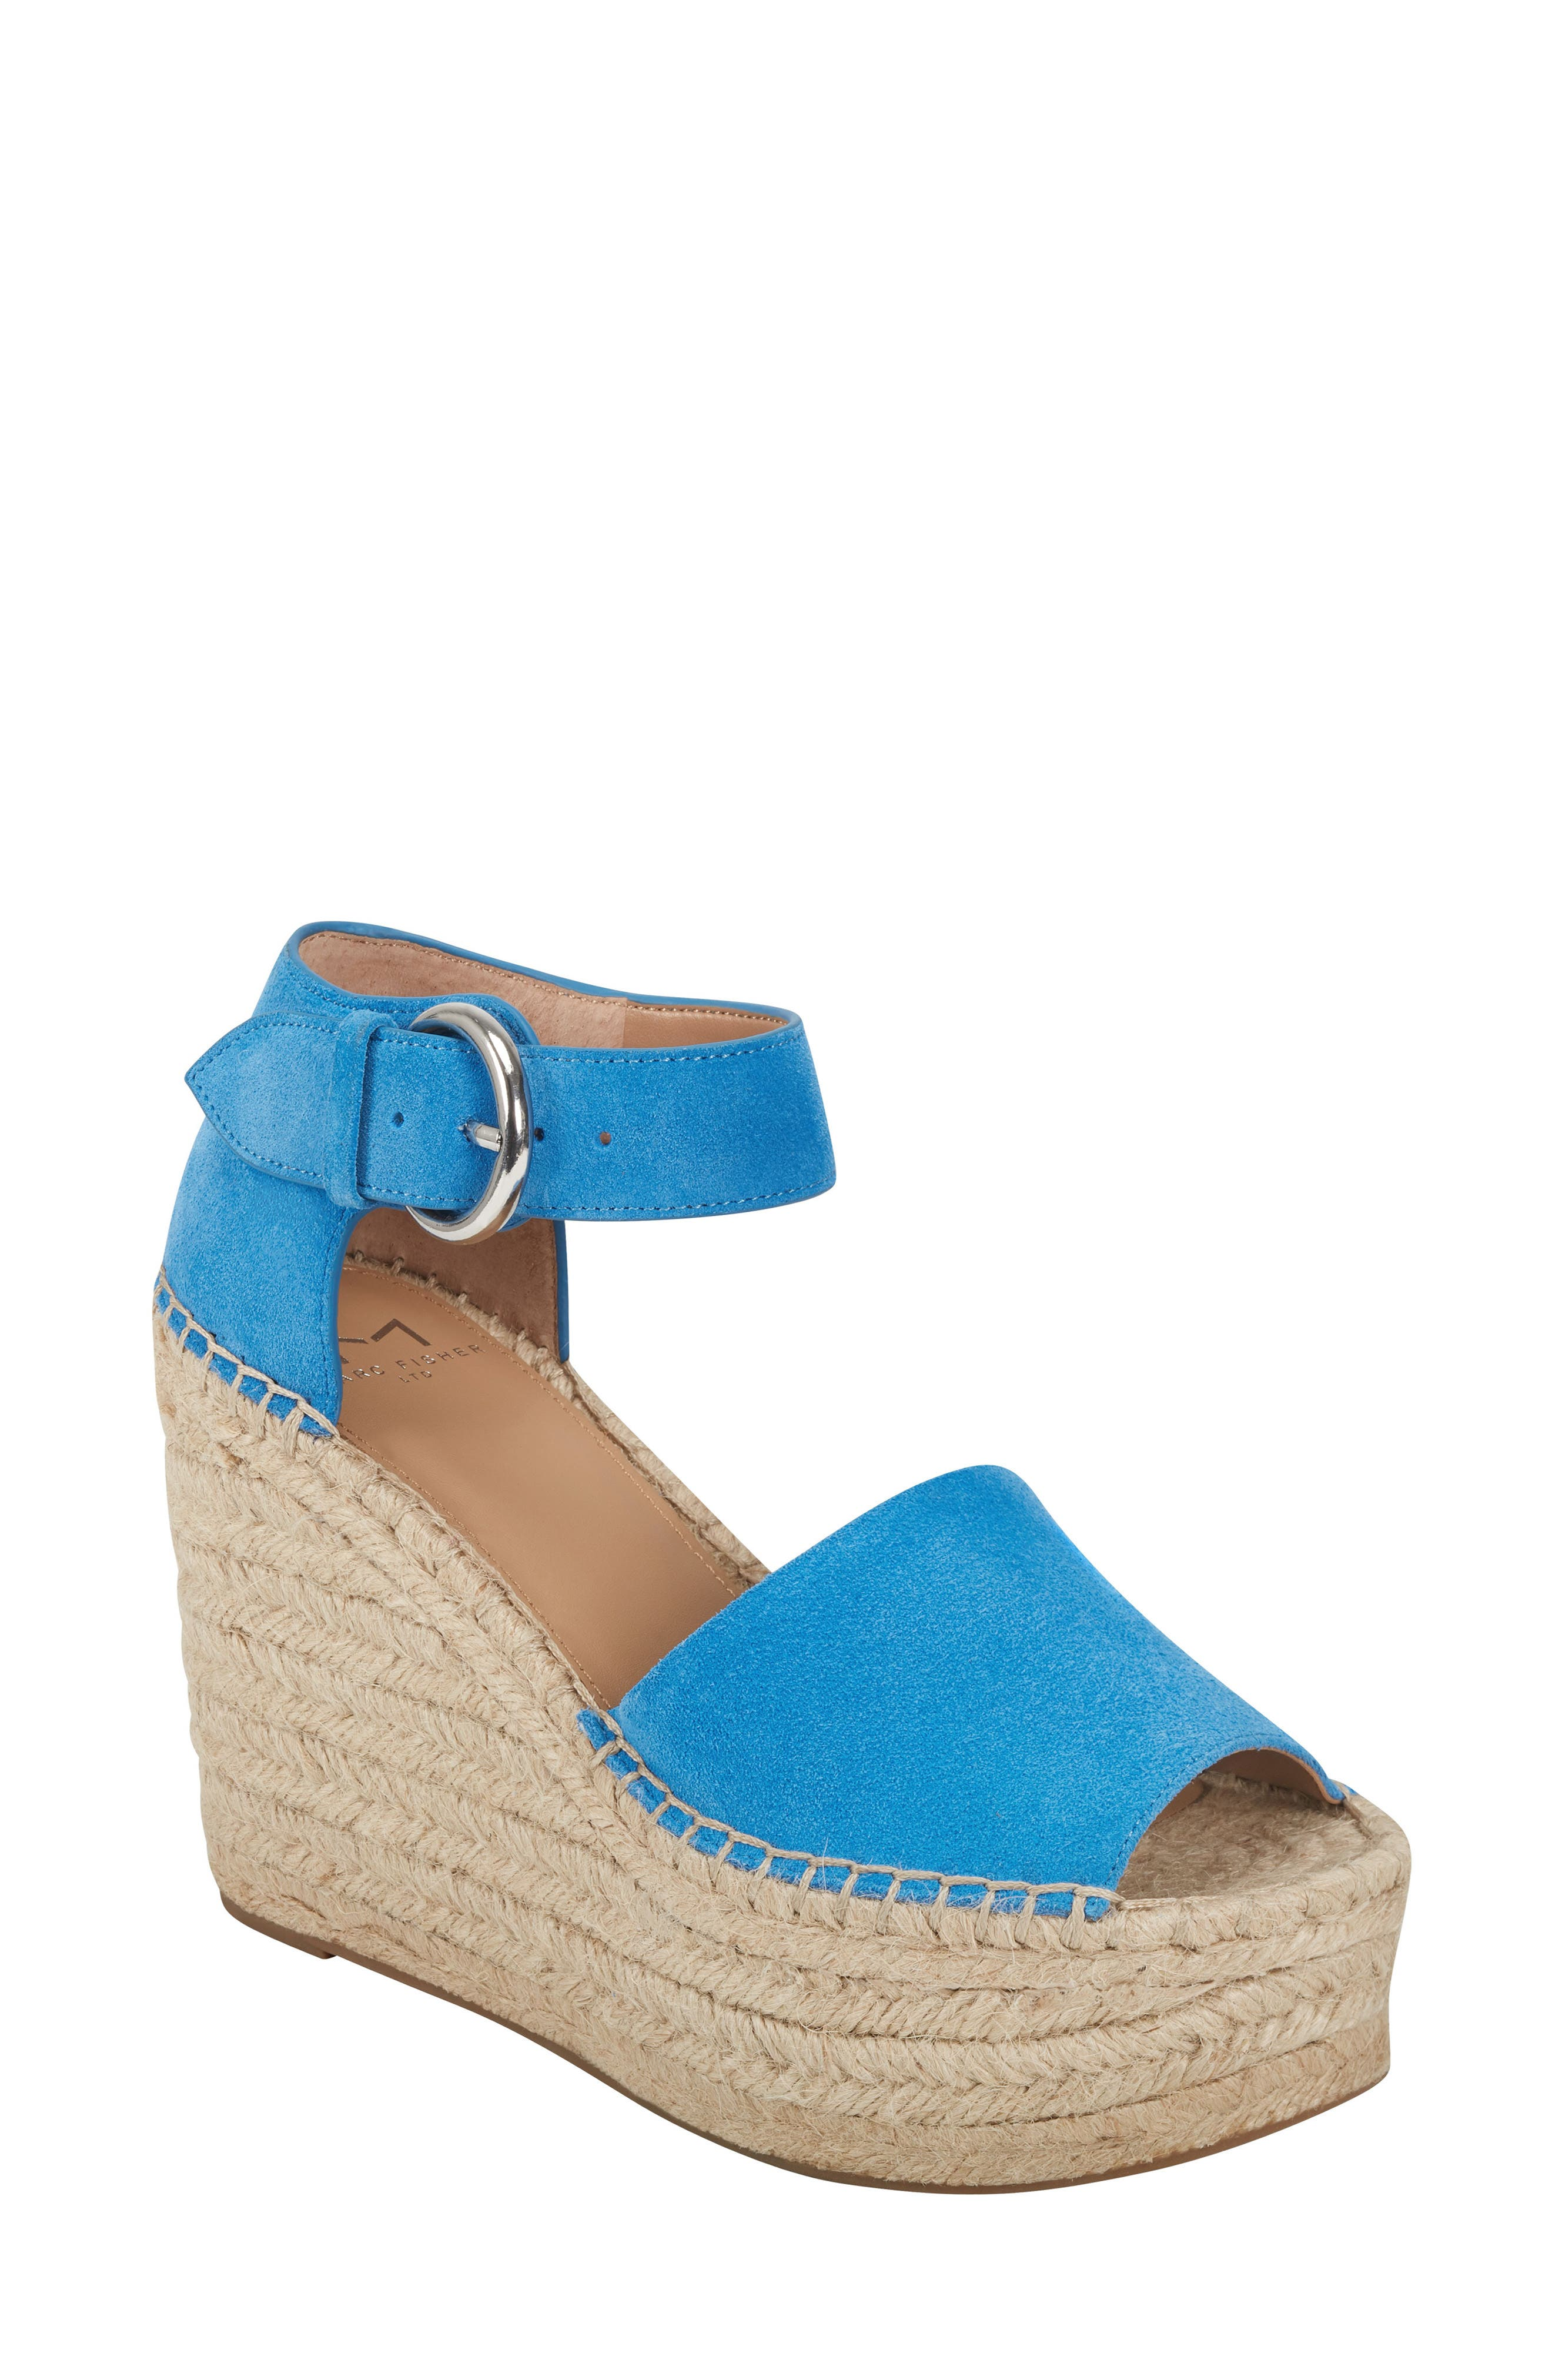 Layers of artfully-braided jute wrap around the signature platform wedge of an eye-catching ankle-strap sandal in buttery soft suede. Style Name: Marc Fisher Ltd Alida Espadrille Platform Wedge (Women). Style Number: 5464553 6. Available in stores.